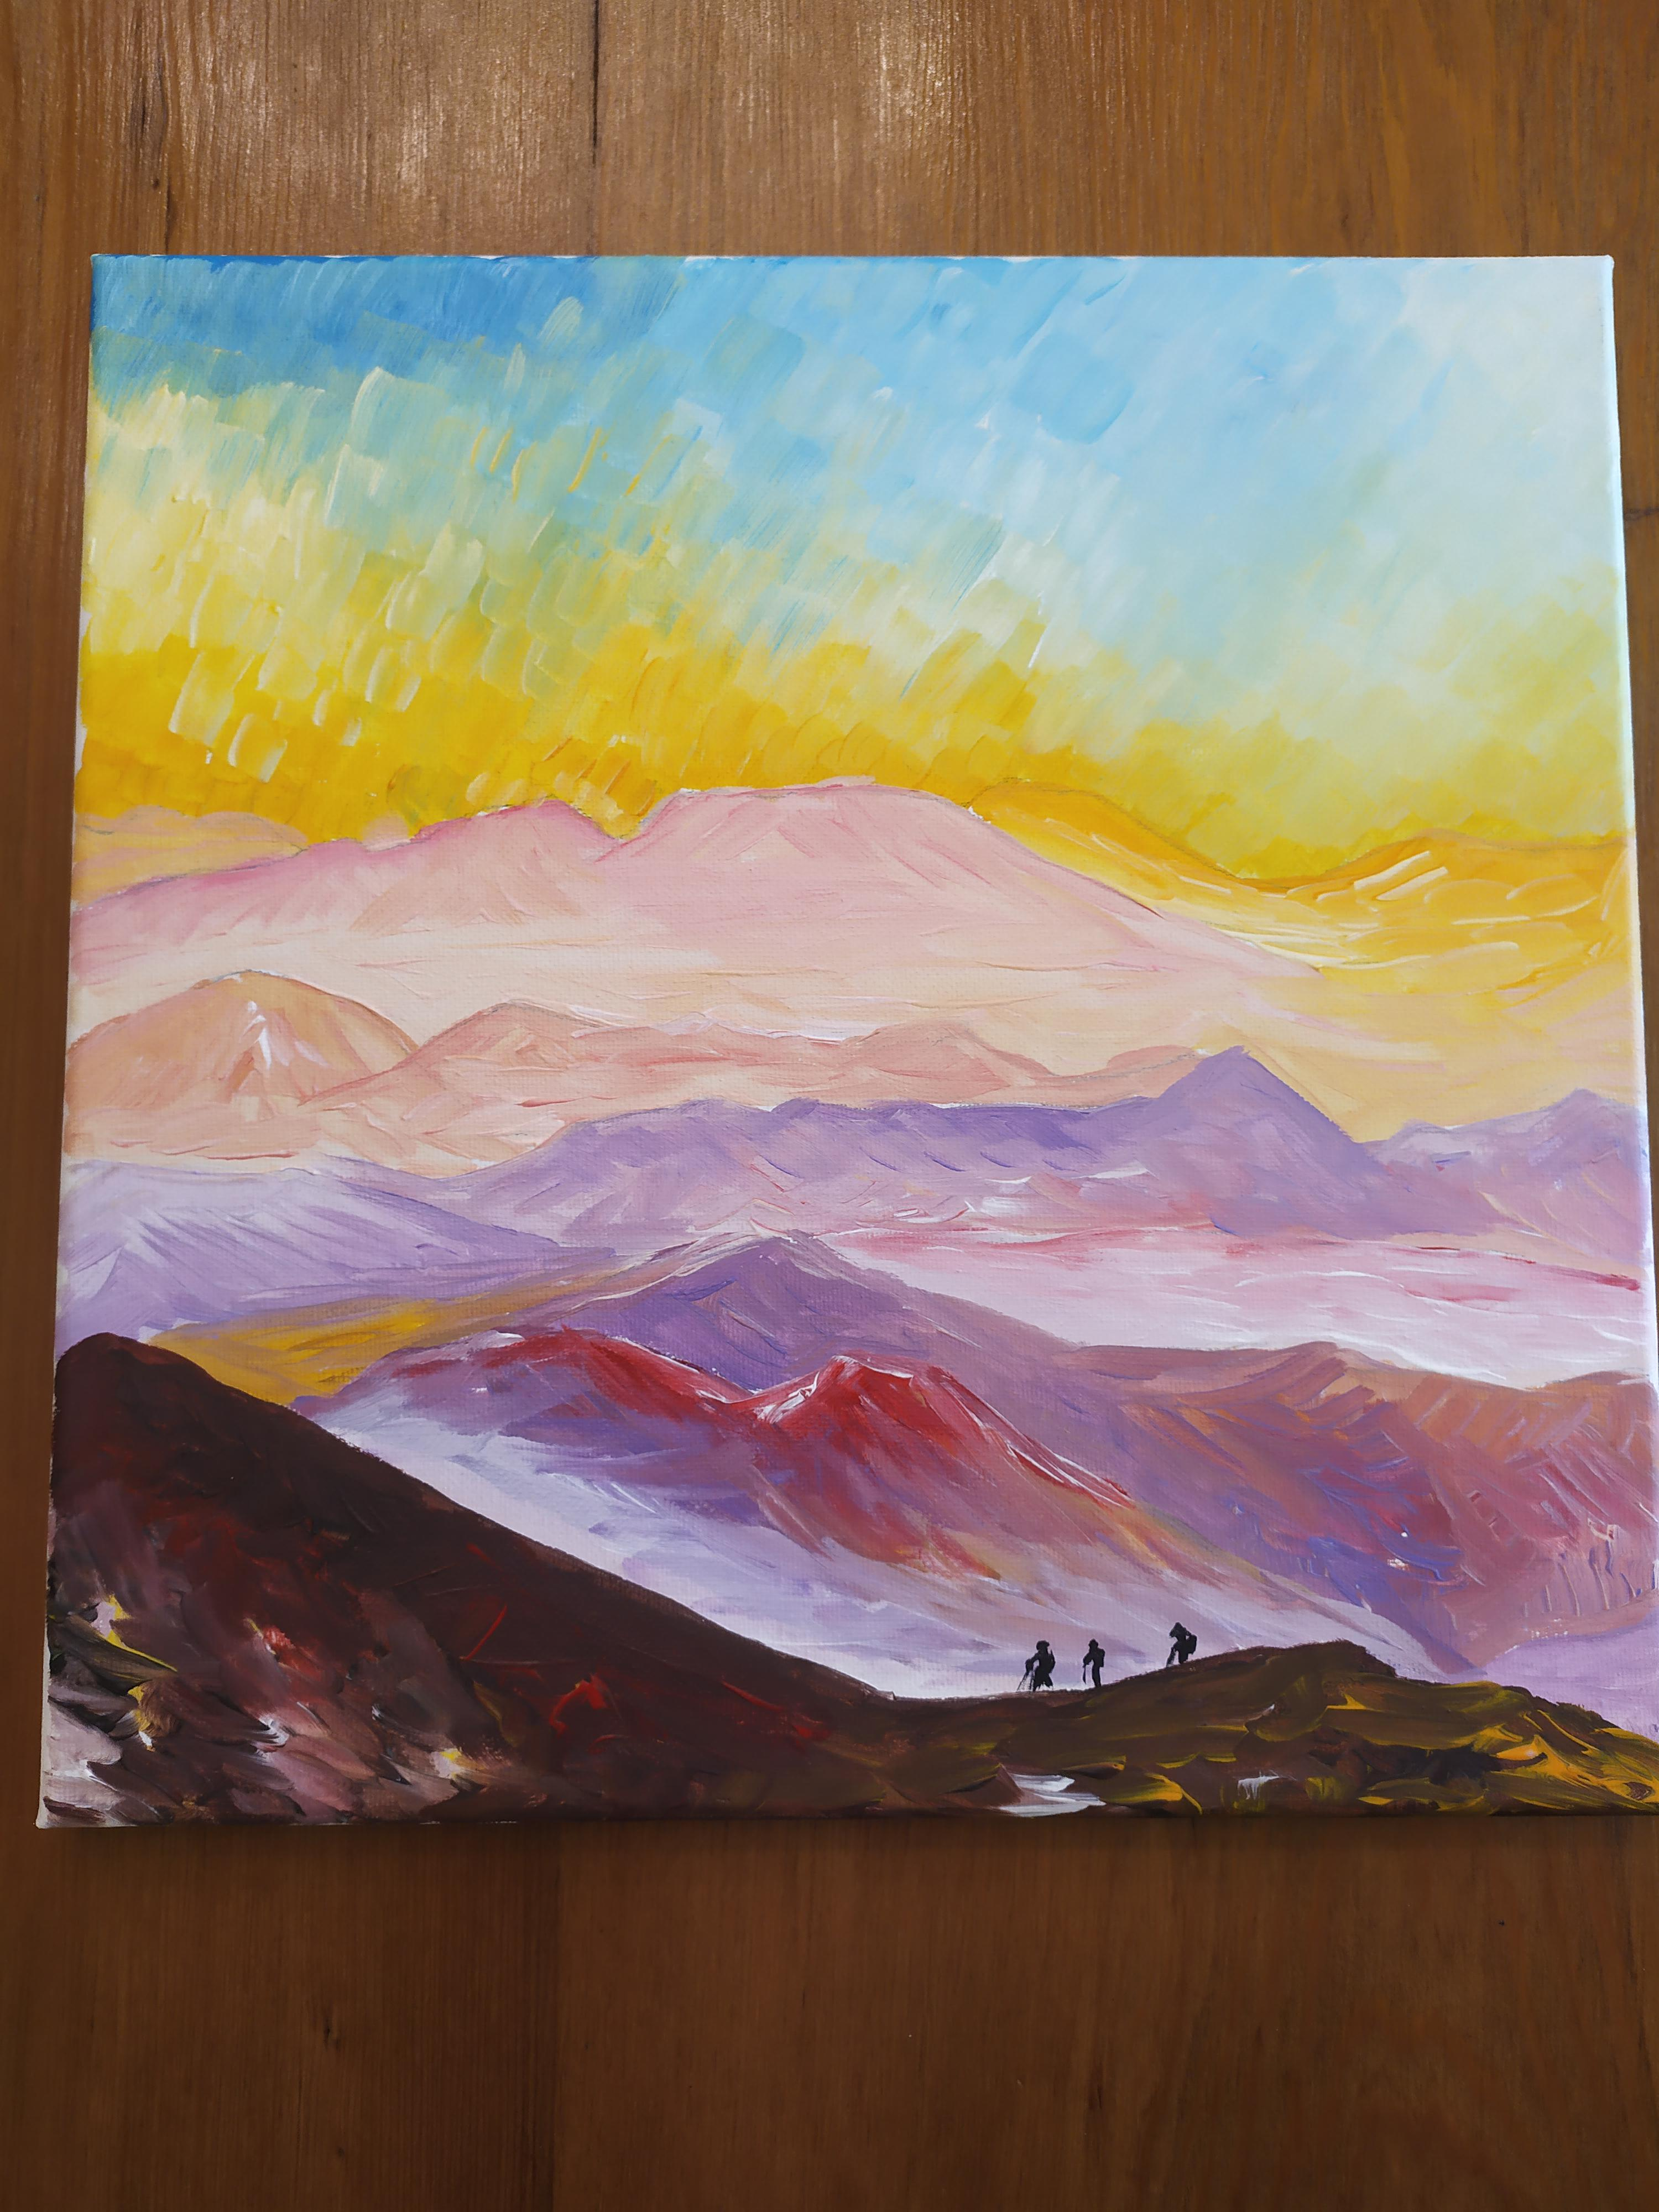 How To Paint Mountains With Acrylics : paint, mountains, acrylics, Paint, Mountain, Beginners, Acrylic, Painting, Explorer